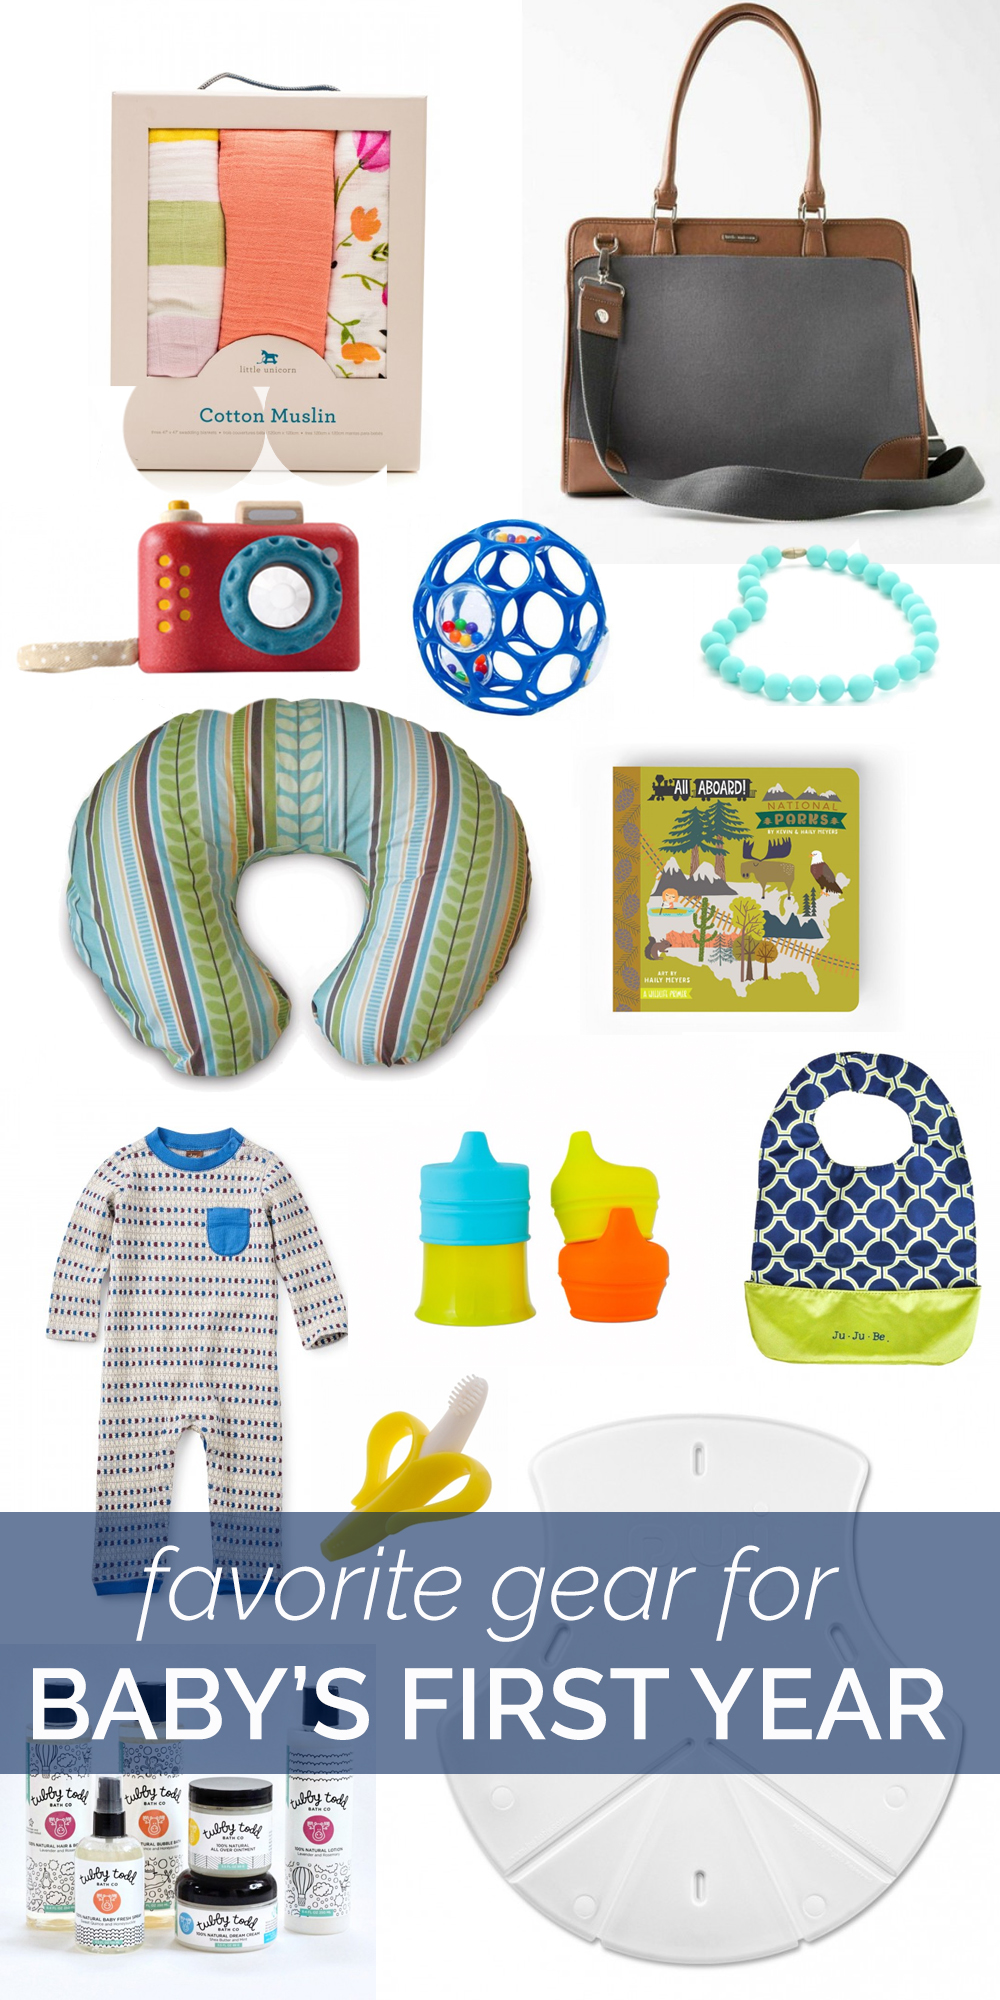 my favorite gear for baby's first year